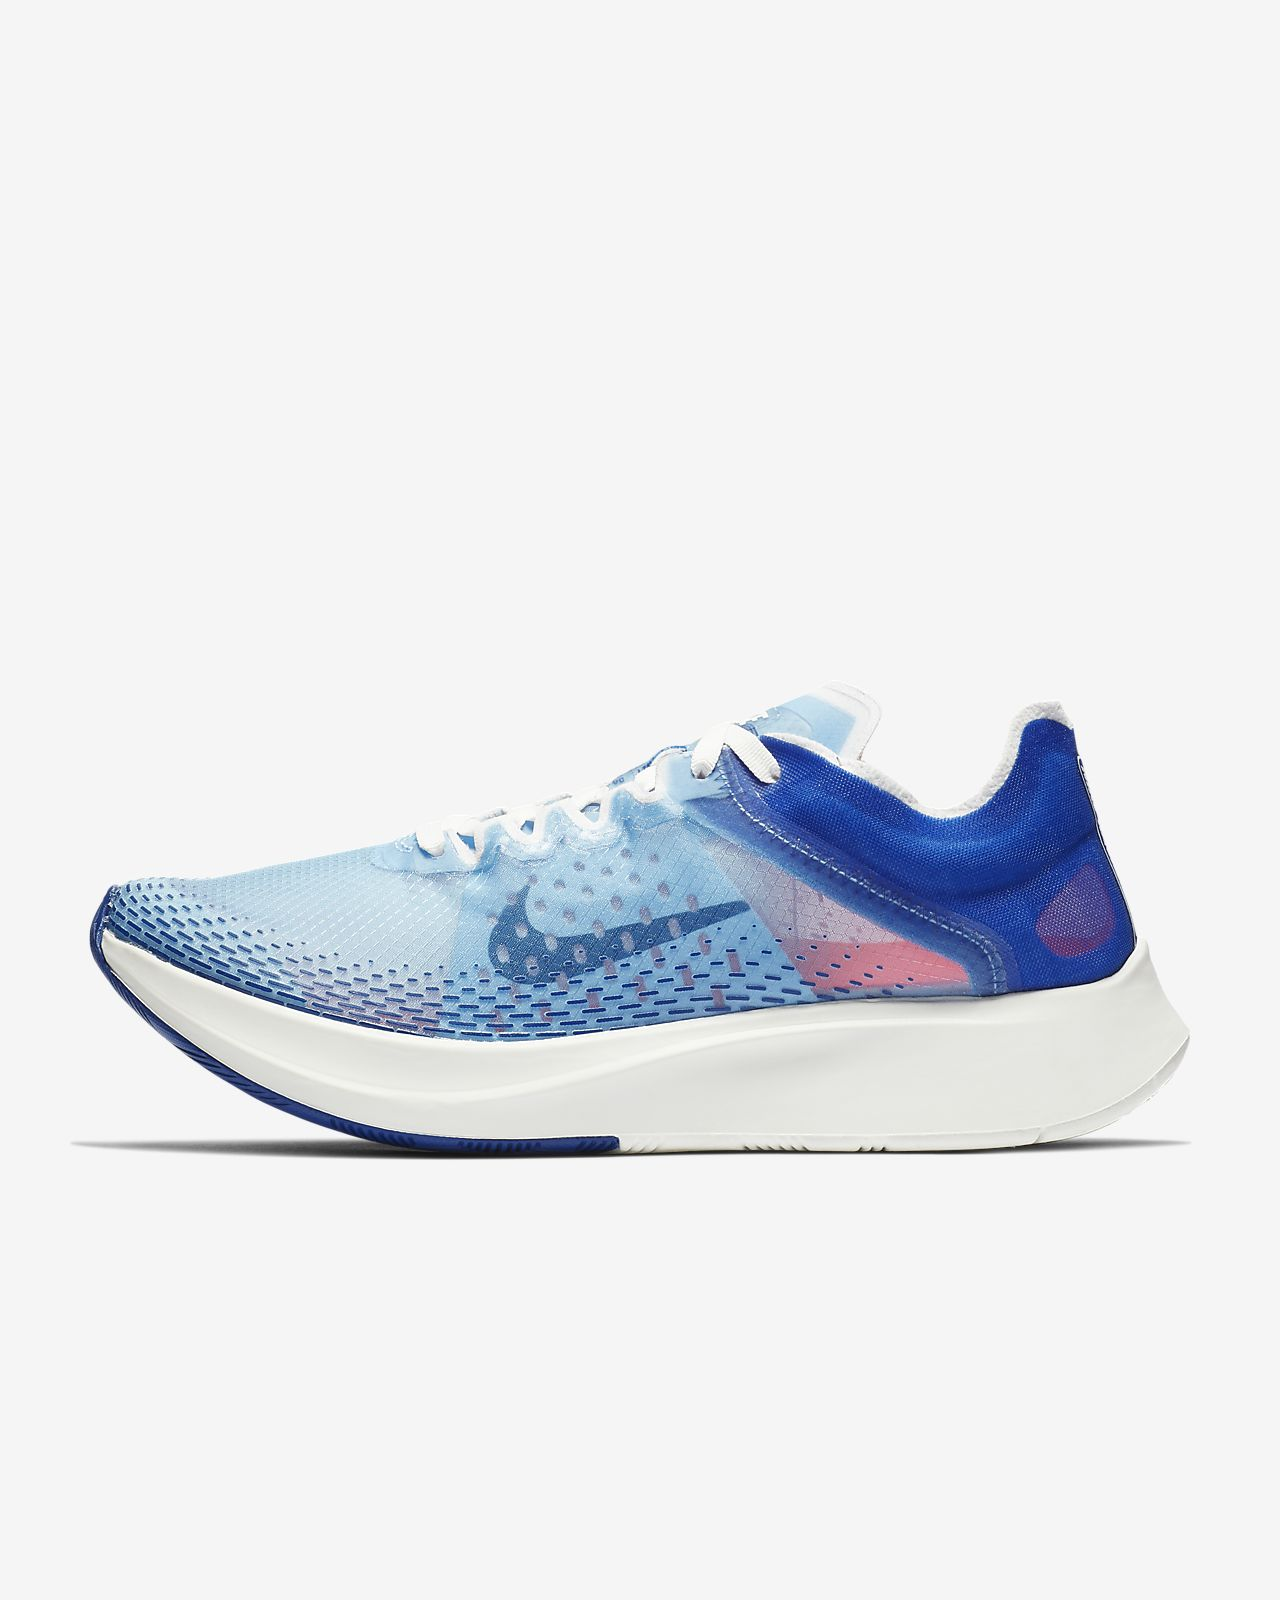 Fly Nike Running Women's Fast Shoe Sp Zoom 80kXwPnO